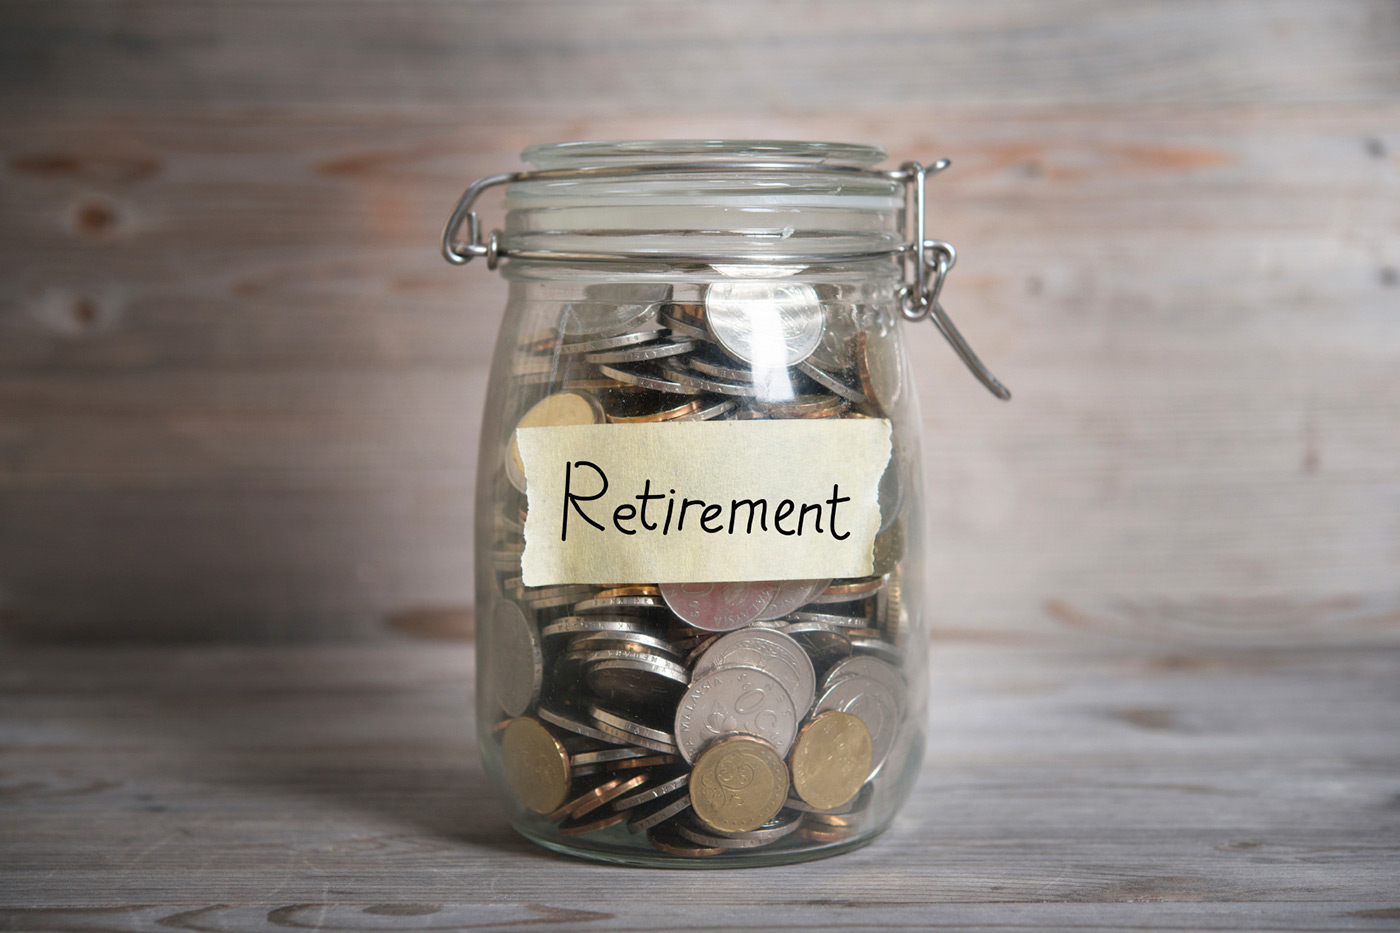 Illinois Pioneers Automatic Retirement Savings Option